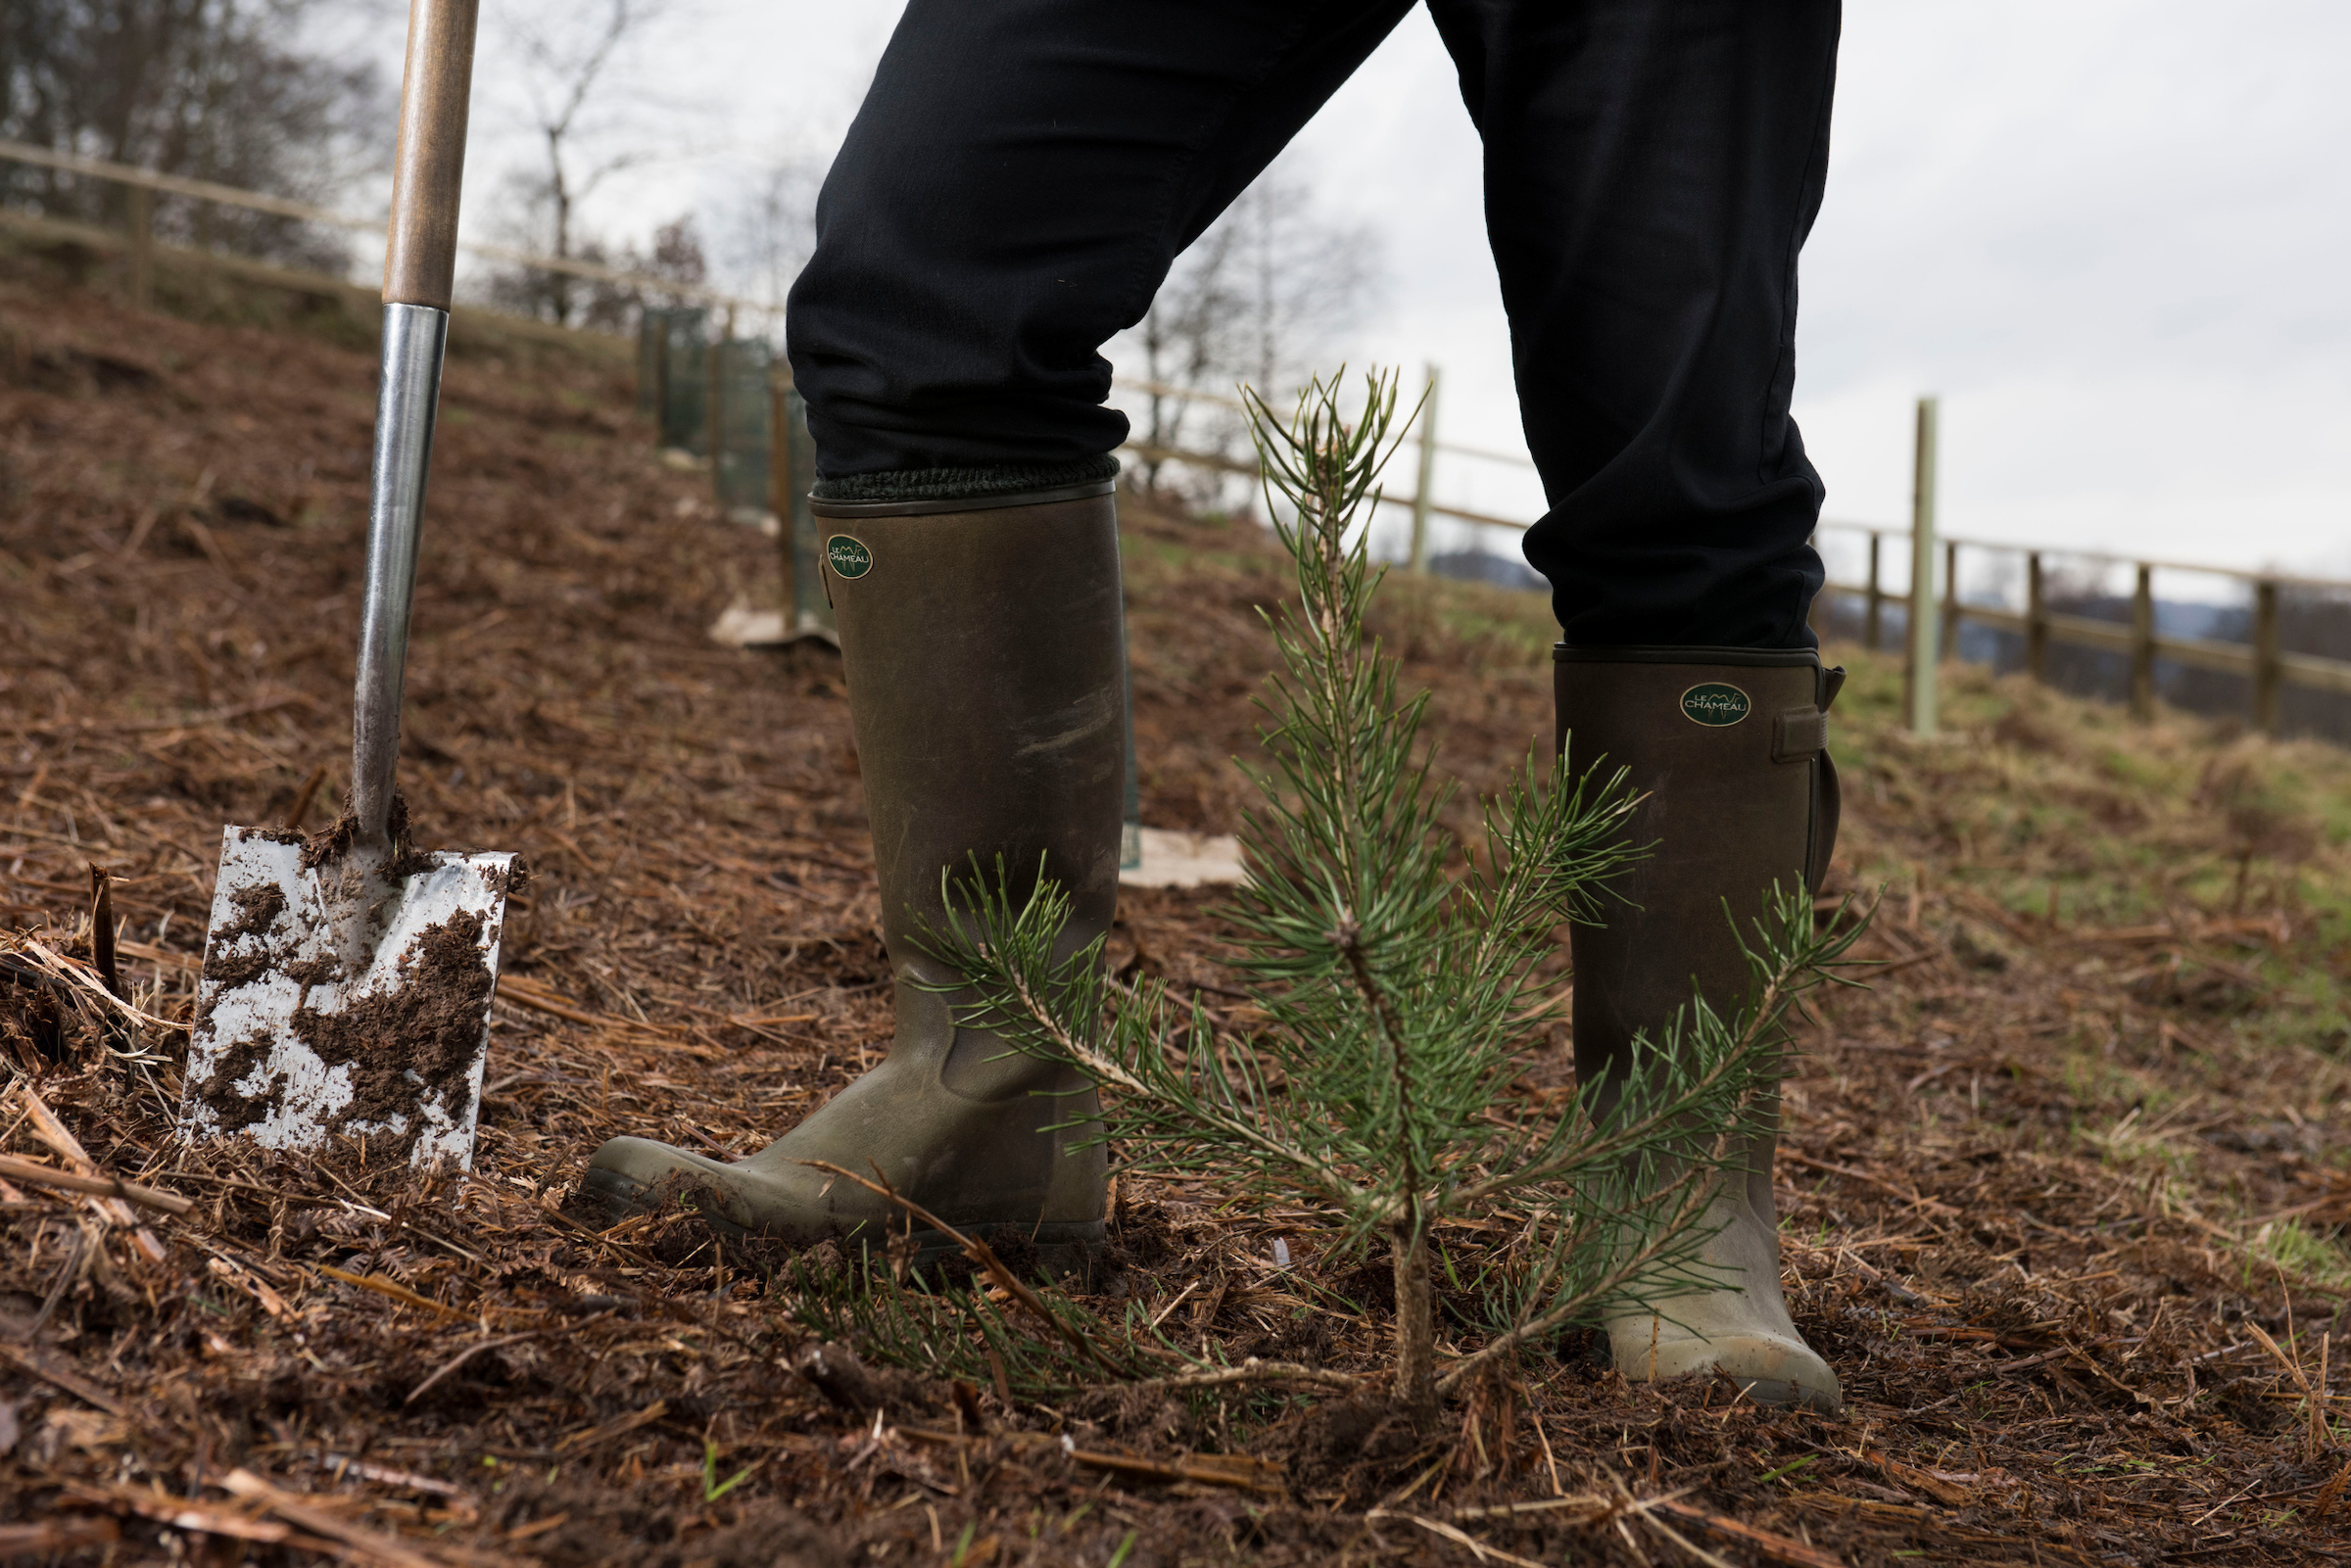 Planting trees has moved up the political agenda